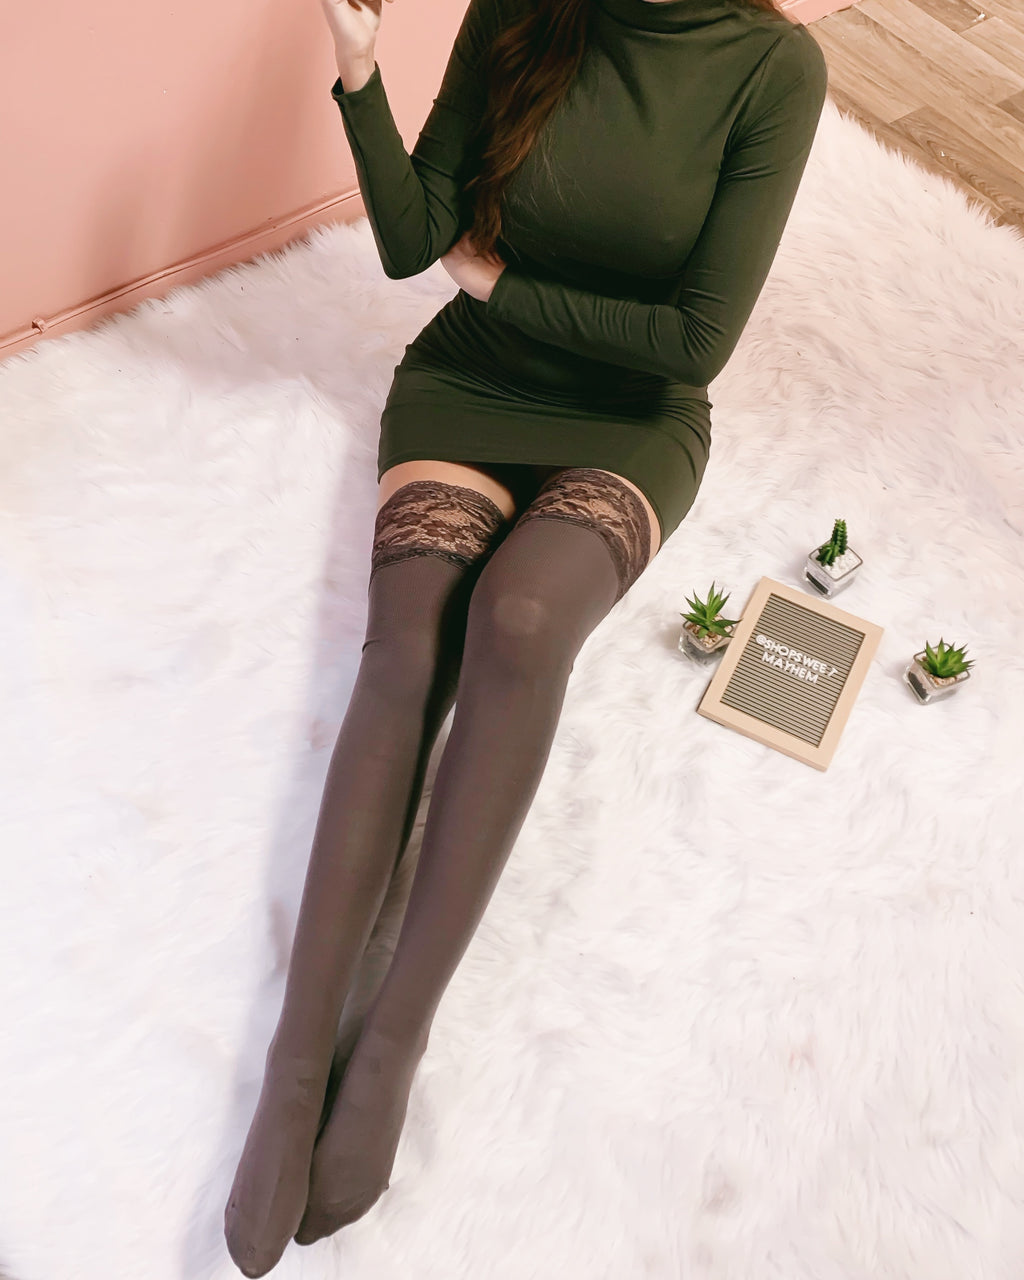 RESTOCKED! DELILAH LACE THIGH HIGH SOCKS (DEEP TAUPE)